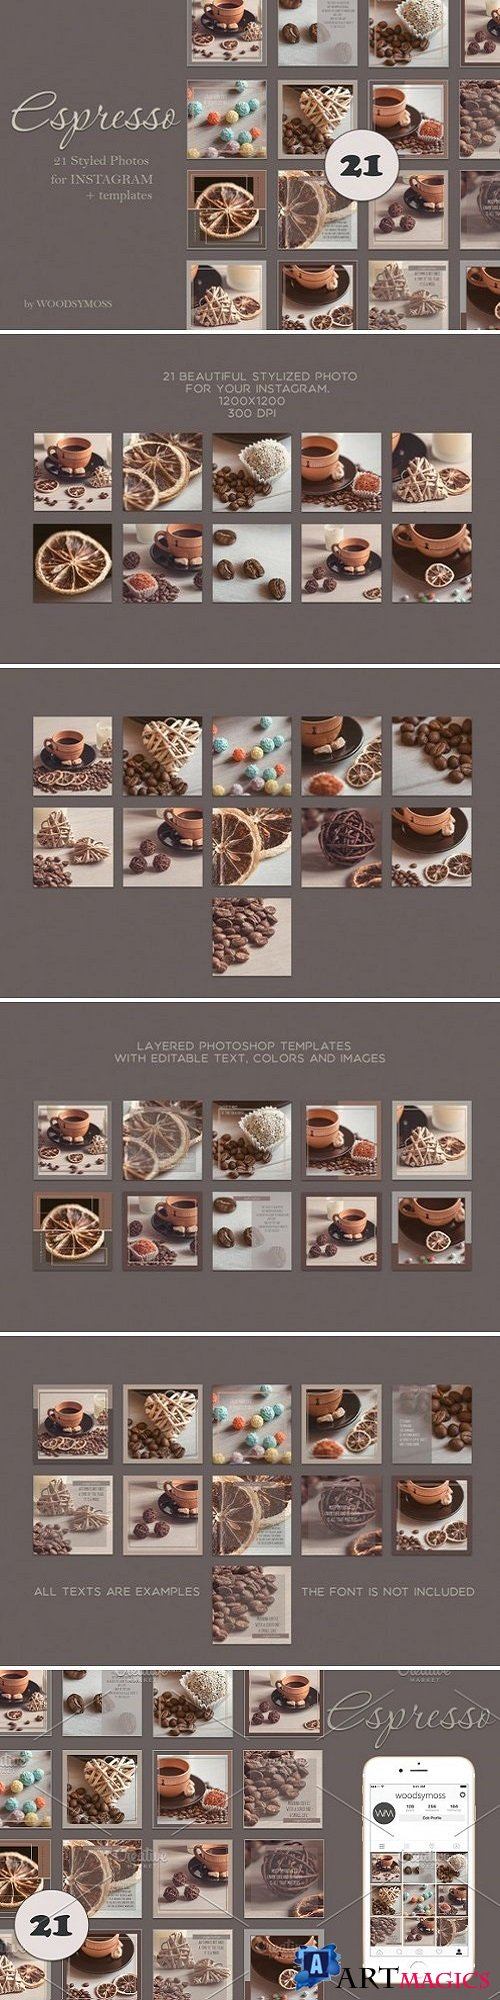 """Espresso"" Photos + templates 2227515"